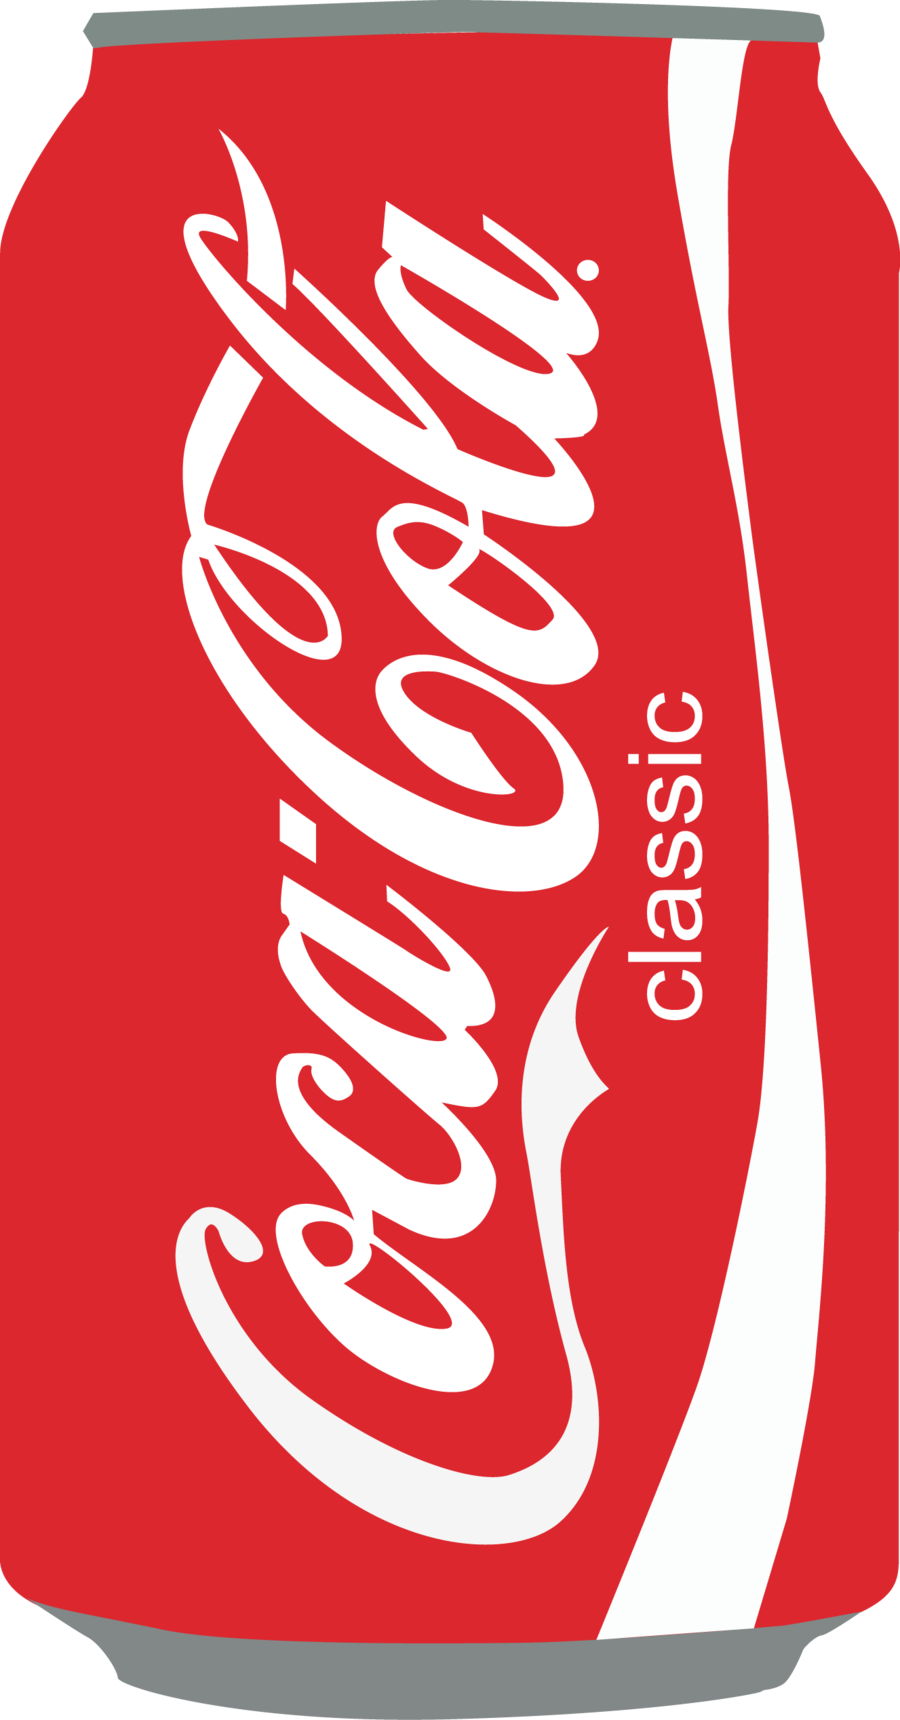 image of coke can clipart best Soda Pop Candy clip art soda pop cans